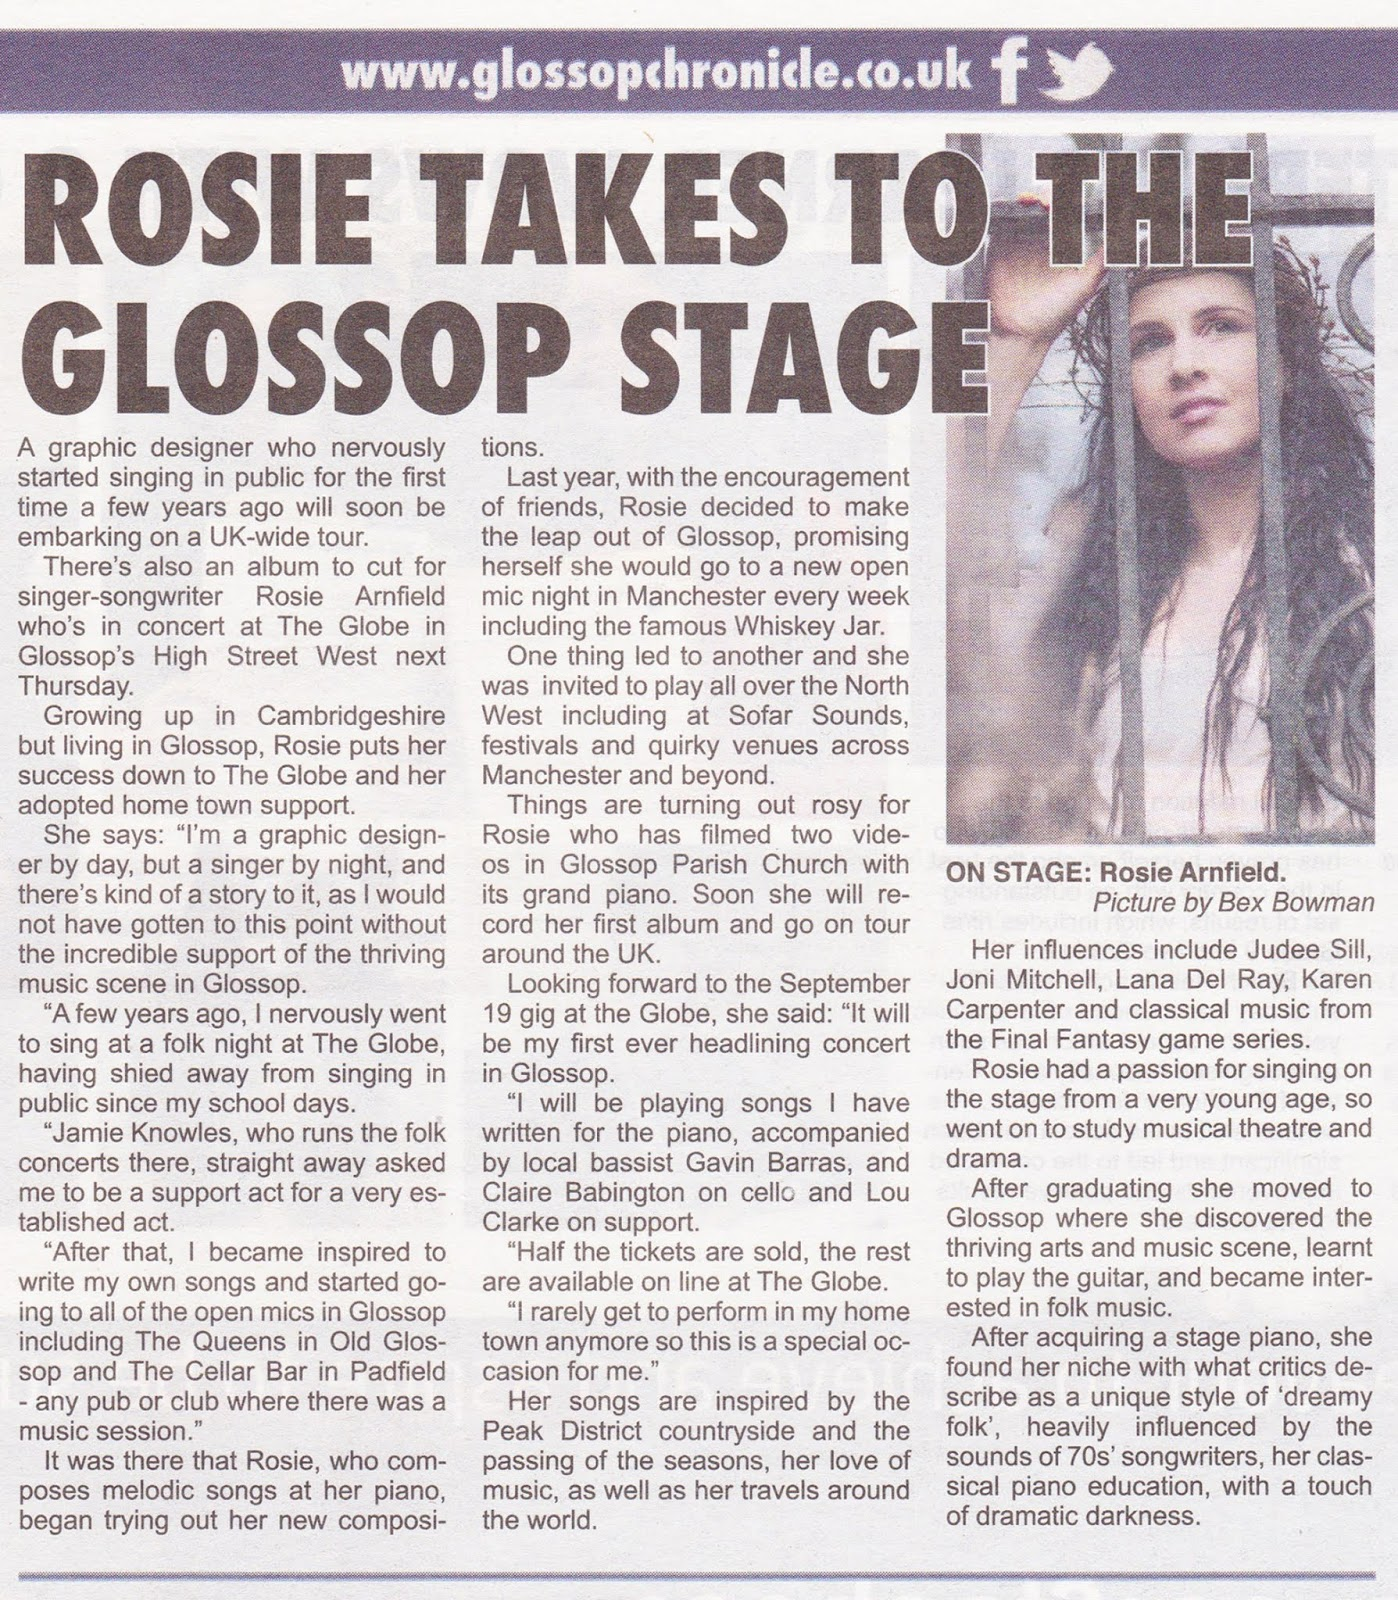 Rosie Takes to The Glossop Stage